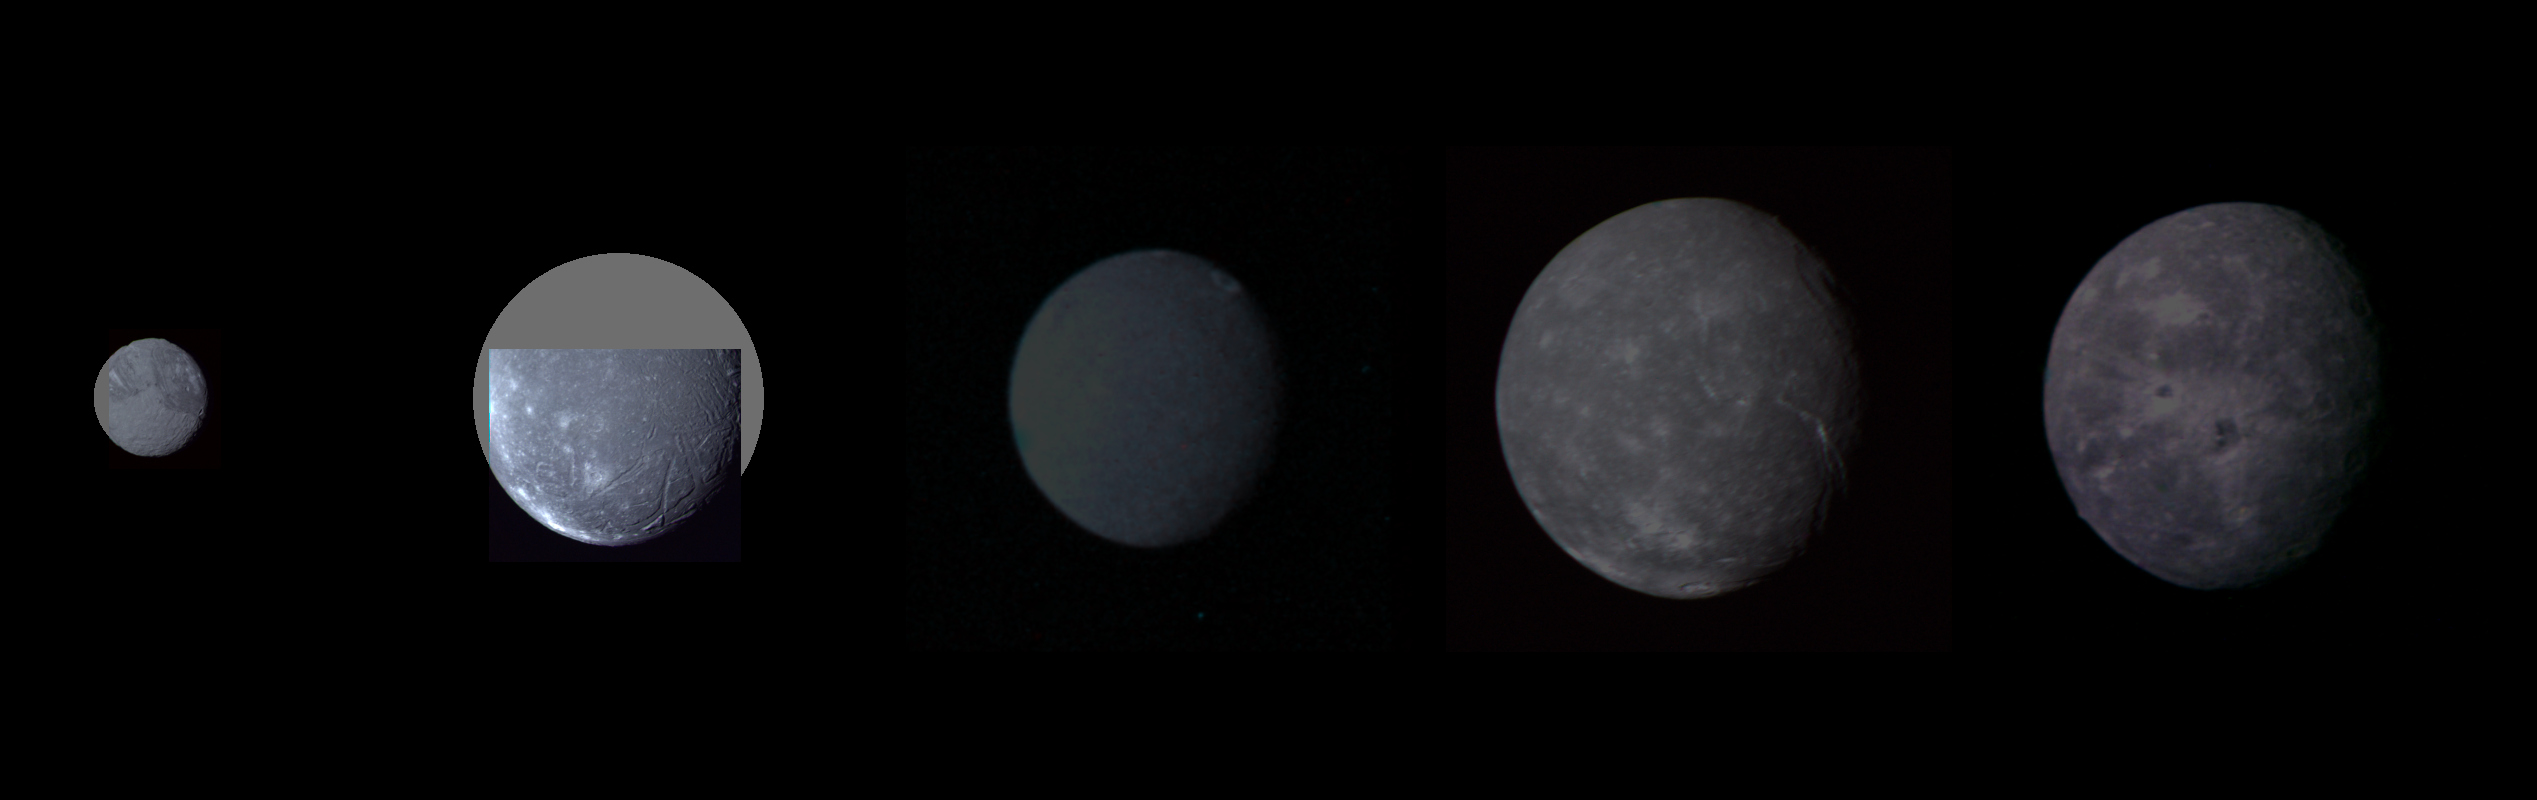 how much moons does uranus have - photo #37